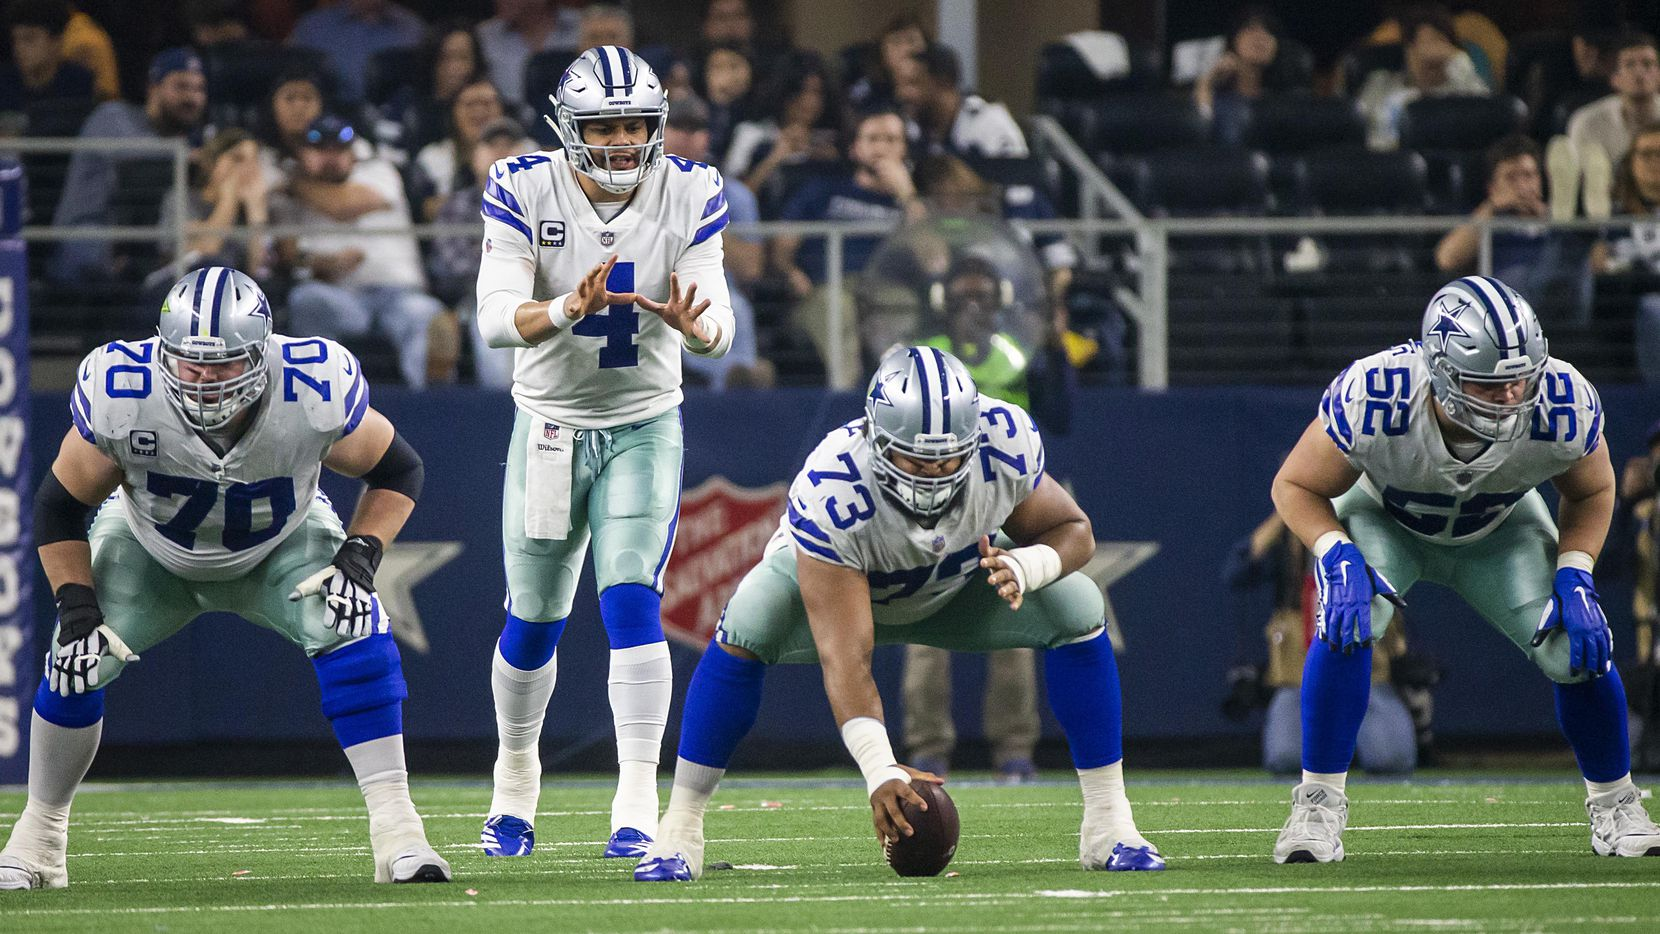 Dallas Cowboys quarterback Dak Prescott (4) lines up behind offensive guard Zack Martin (70), center Joe Looney (73) and offensive guard Connor Williams (52) during the second half of an NFL wild-card playoff football game against the Seattle Seahawks at AT&T Stadium on Saturday, Jan. 5, 2019, in Arlington. The Cowboys won the game 24-22.